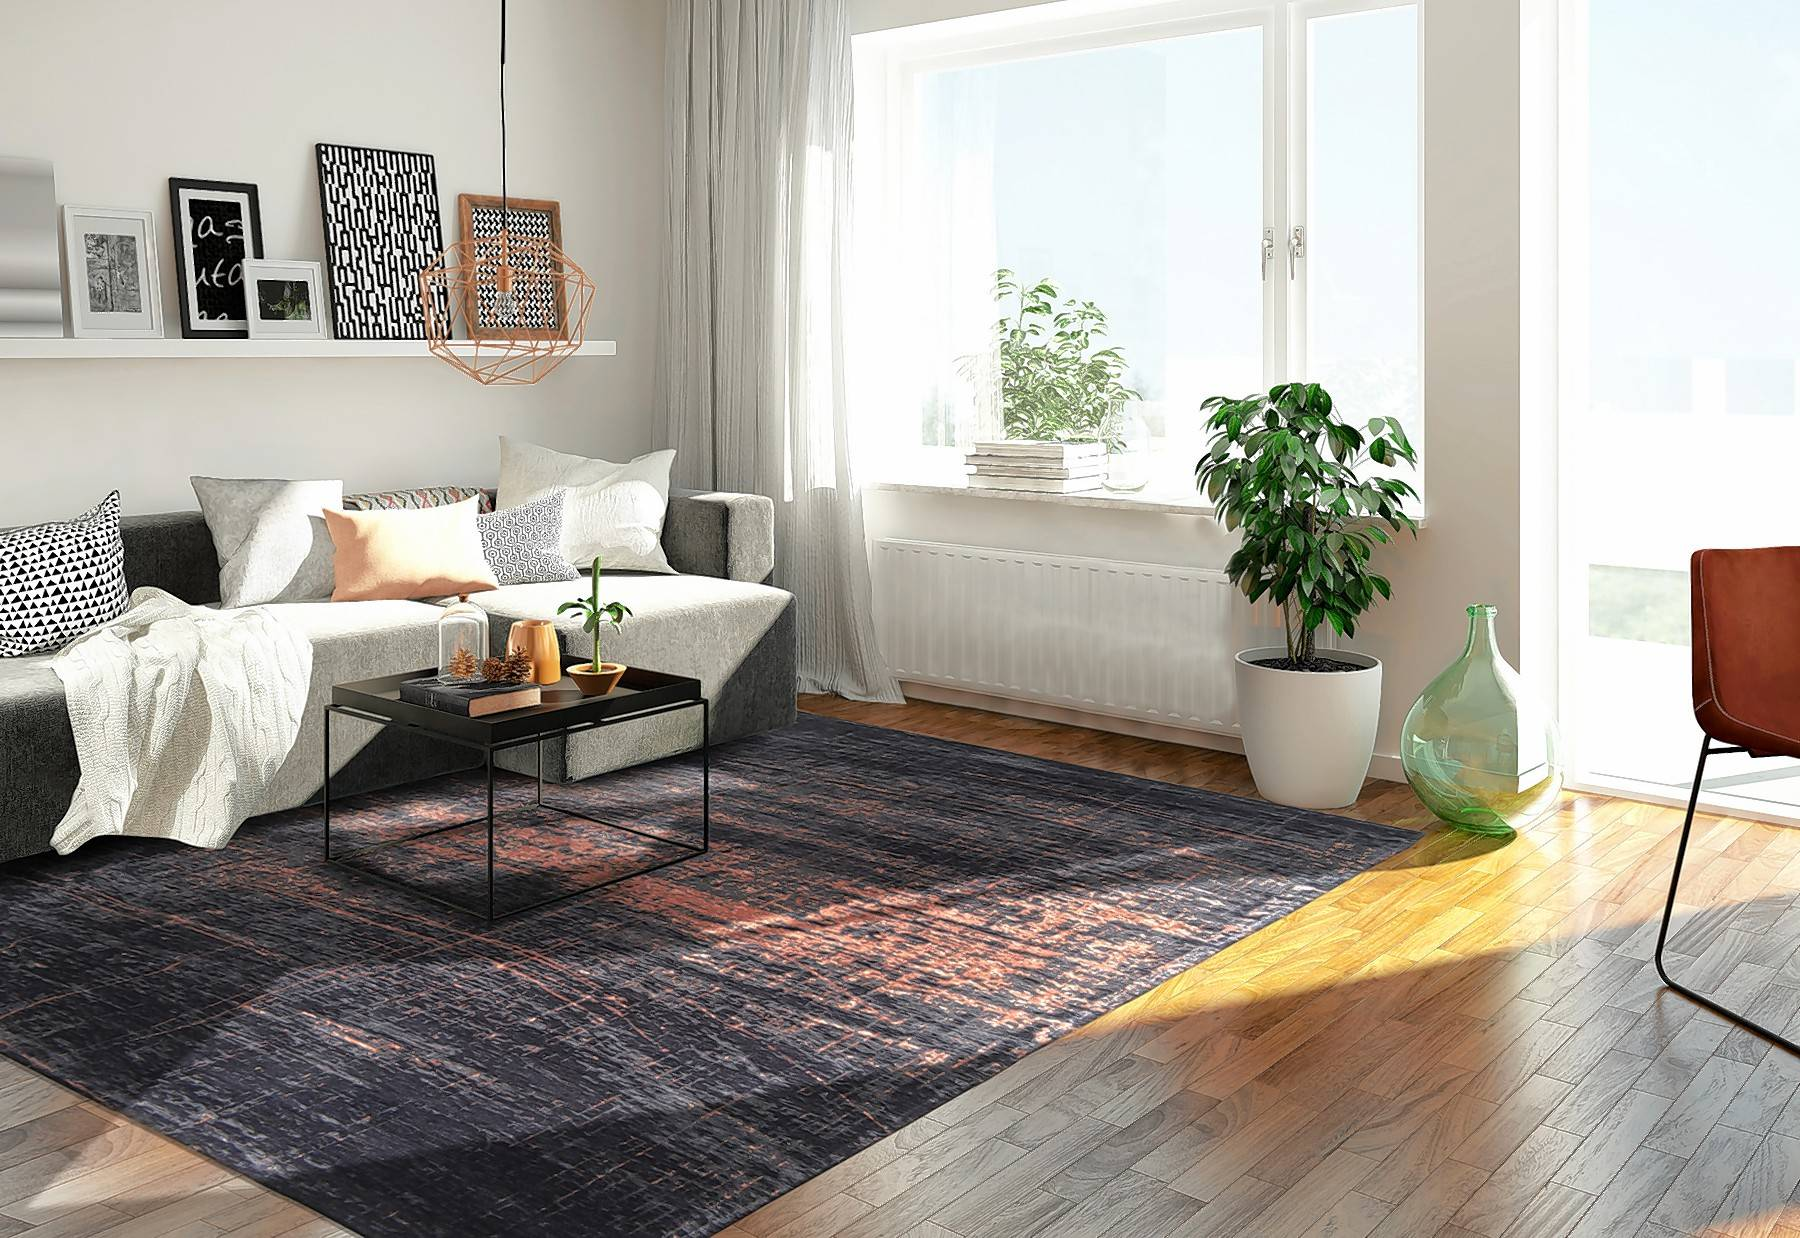 Mark the territory with an area rug, as represented here, to define a sitting area.